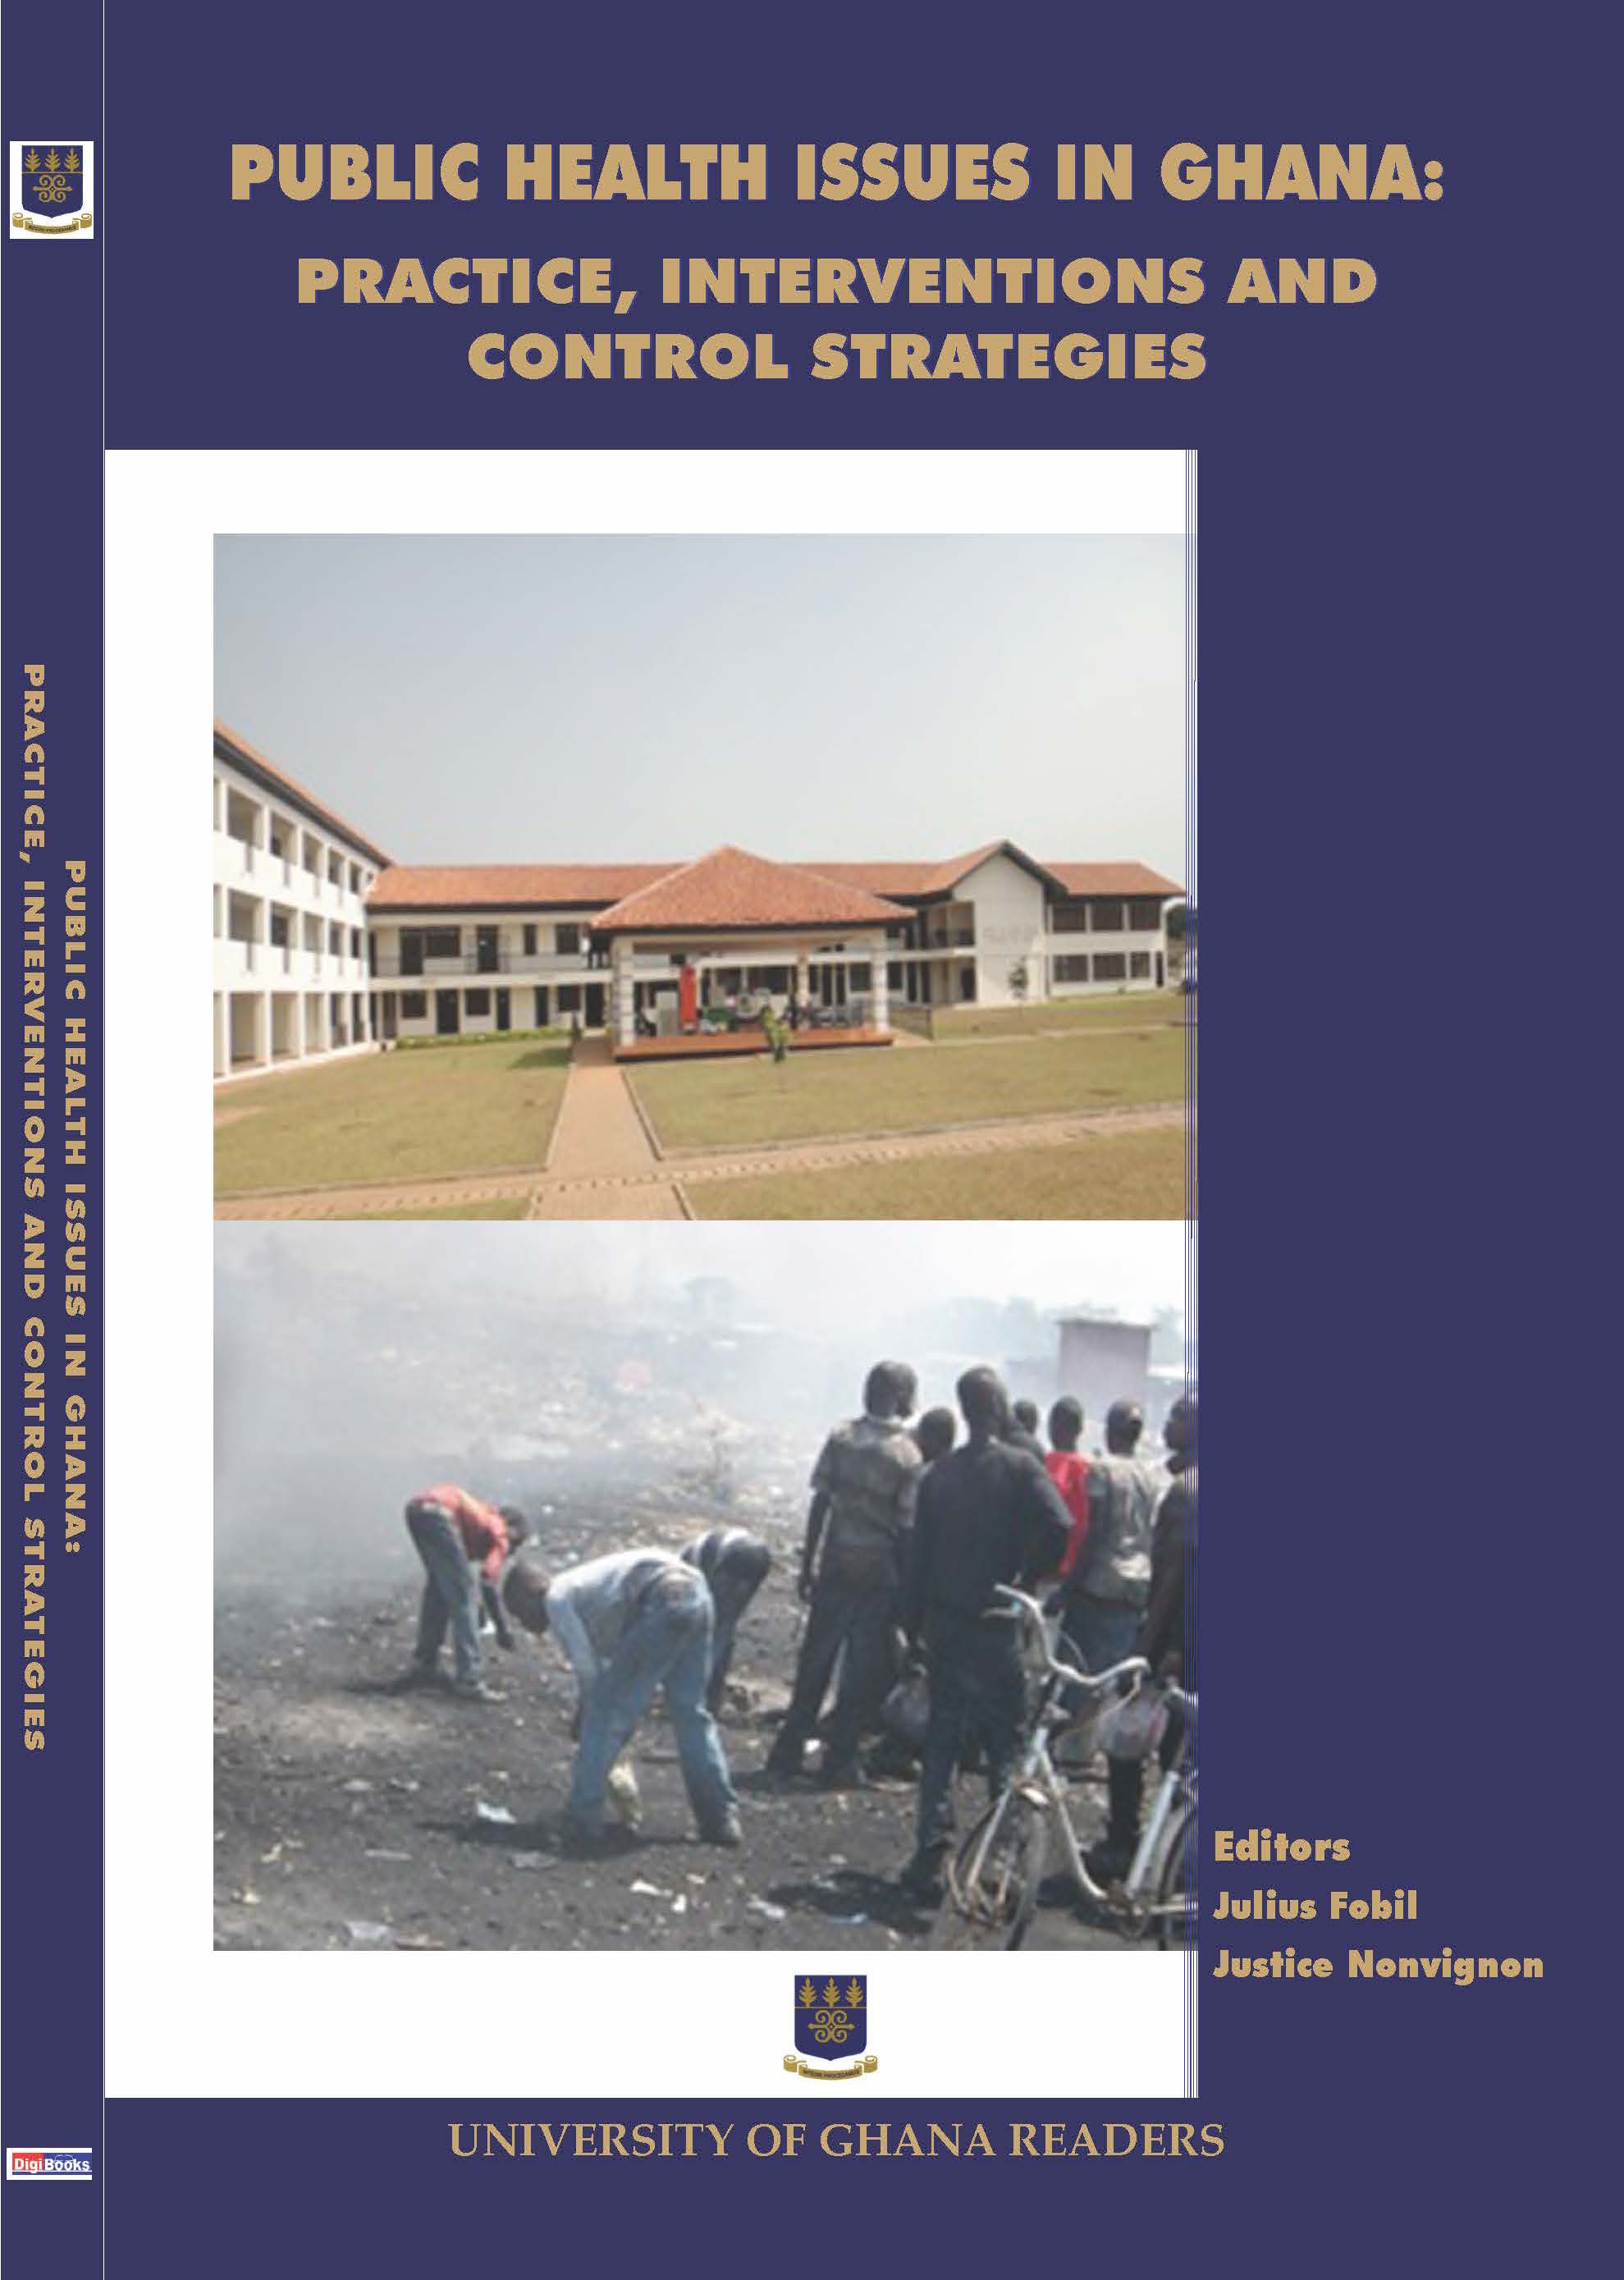 PUBLIC HEALTH ISSUES IN GHANA: PRACTICE, INTERVENTIONS AND CONTROL STRATEGIES